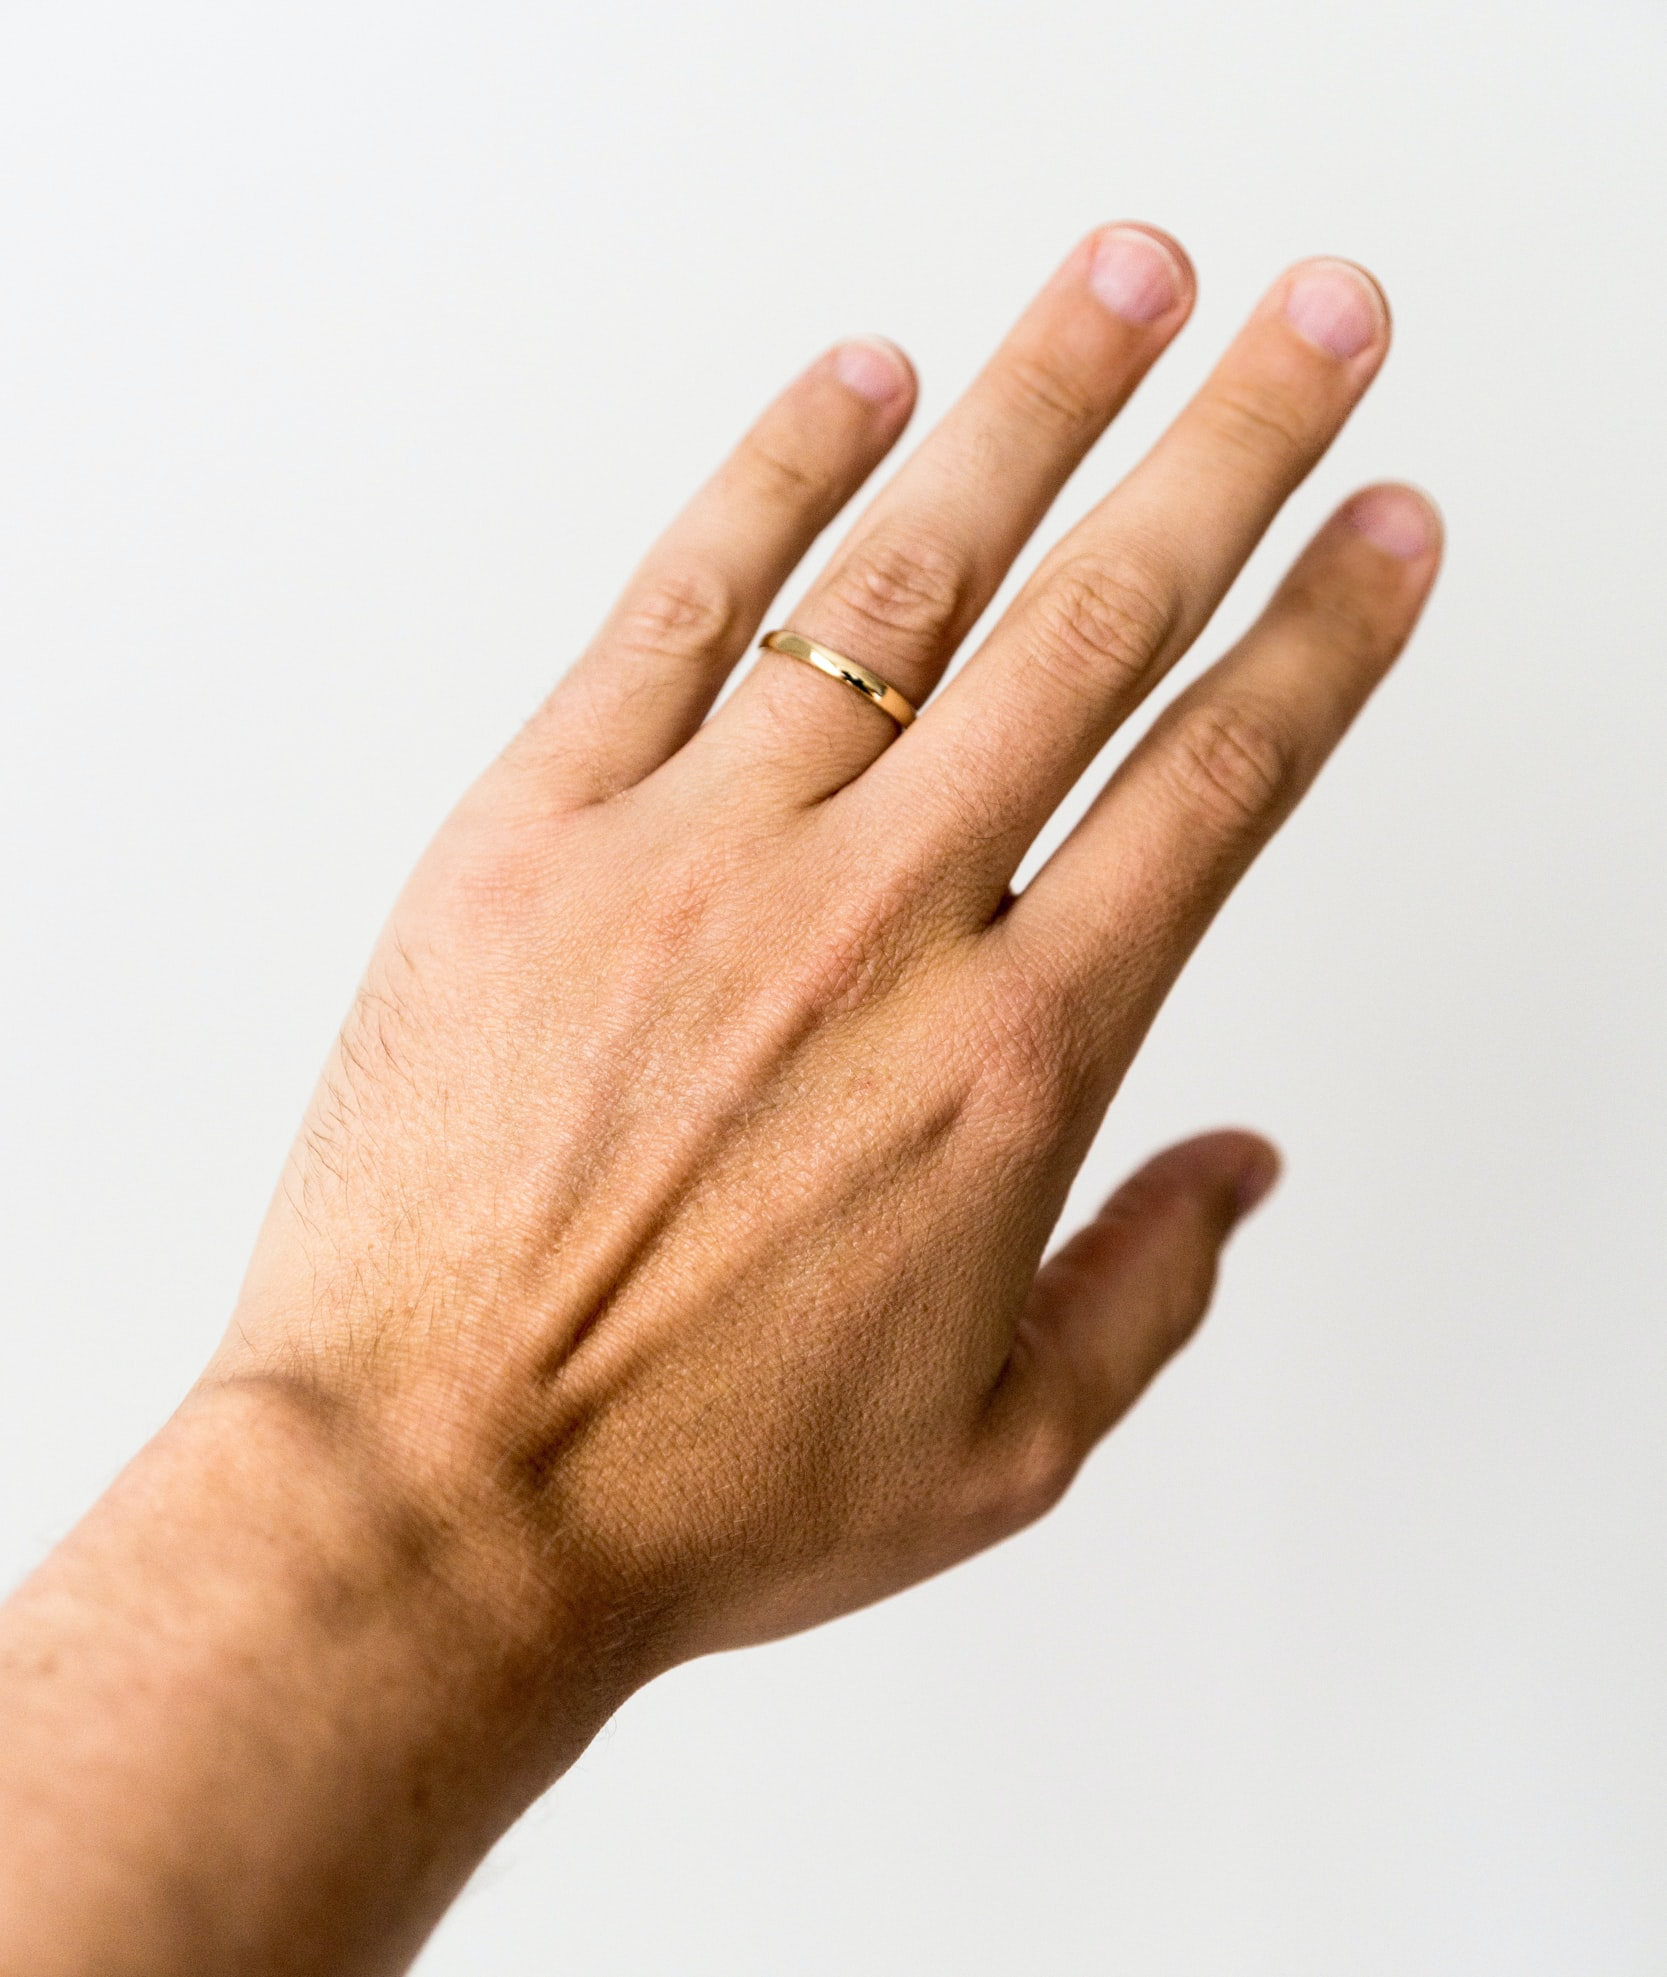 person showing gold-colored ring